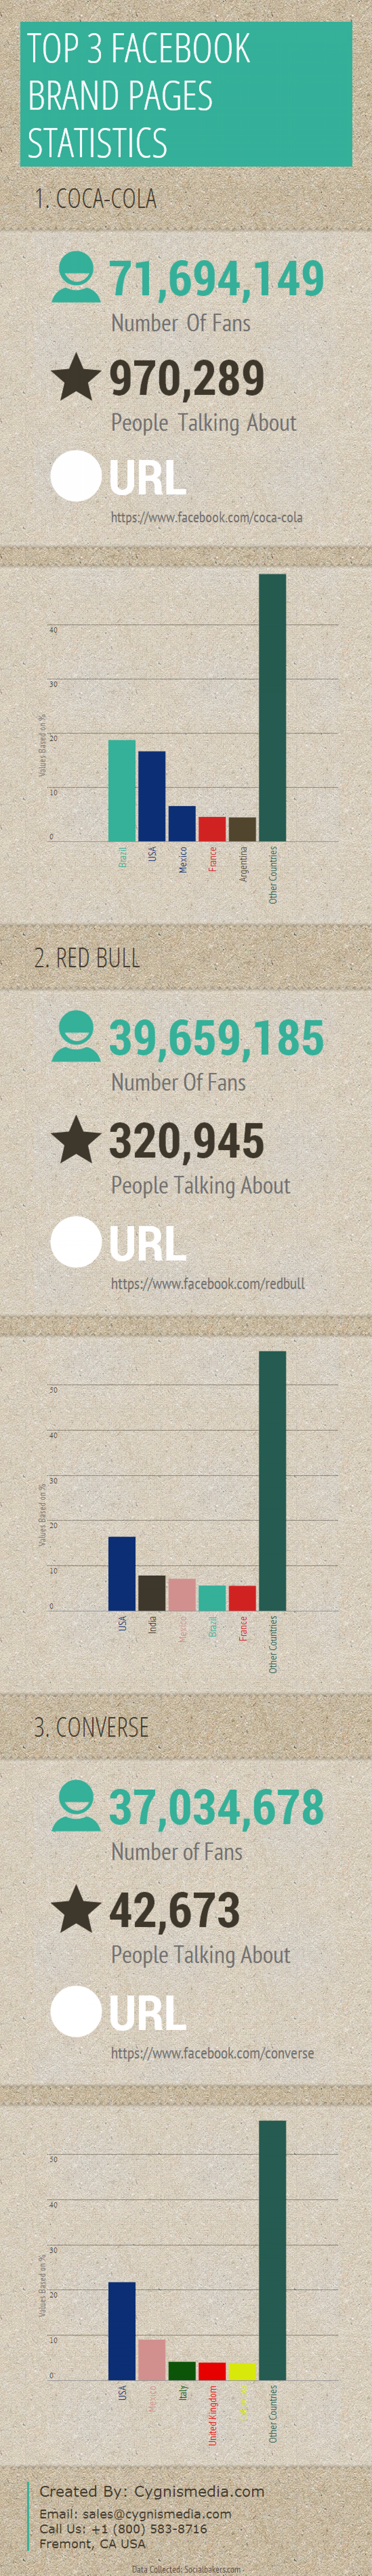 Top Facebook Brand Pages Stats Infographic